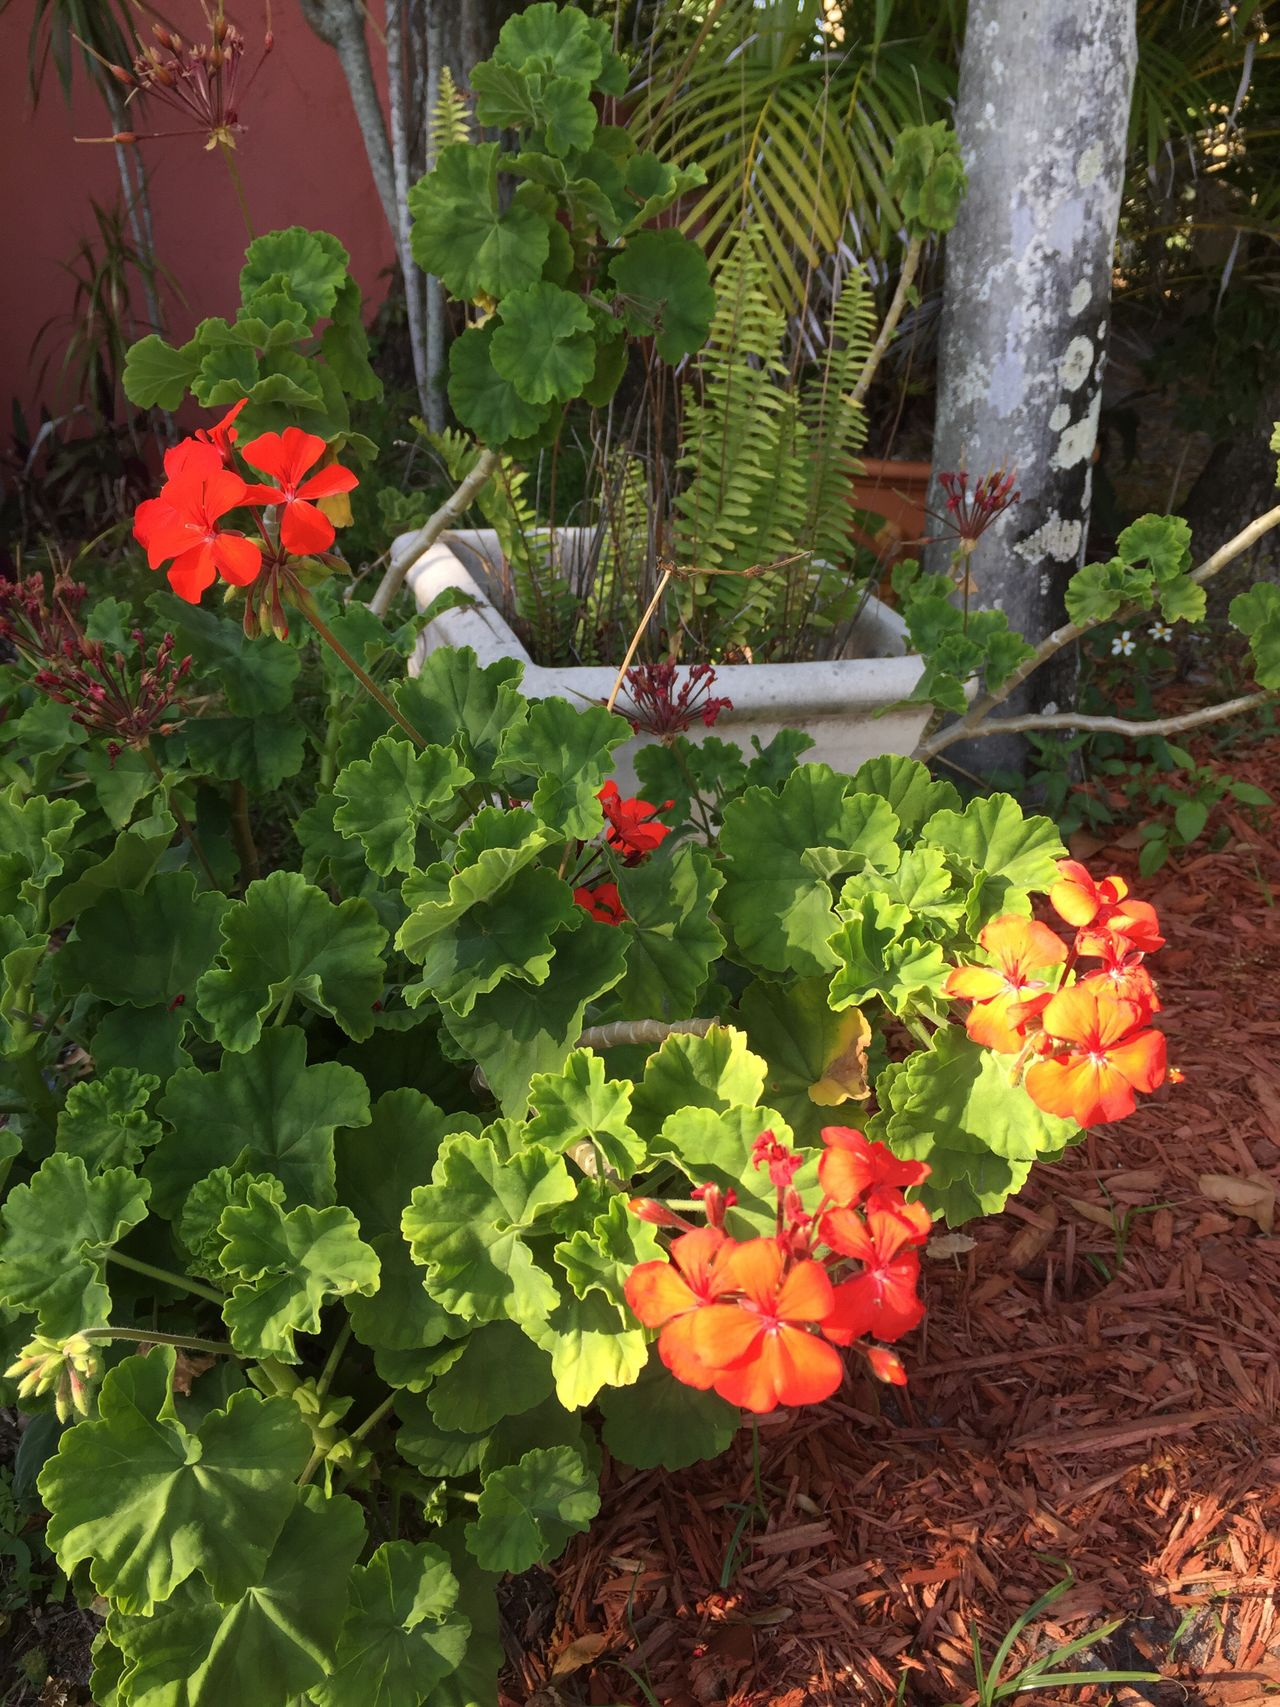 Geraniums in Florida garden Geraniums Florida Gardens Flowers,Plants & Garden Redflowers Floridalandscaping Flowers Swflorida Beauty In Nature SWFloridainMarch Lotsoftagsforoneflowerphoto!